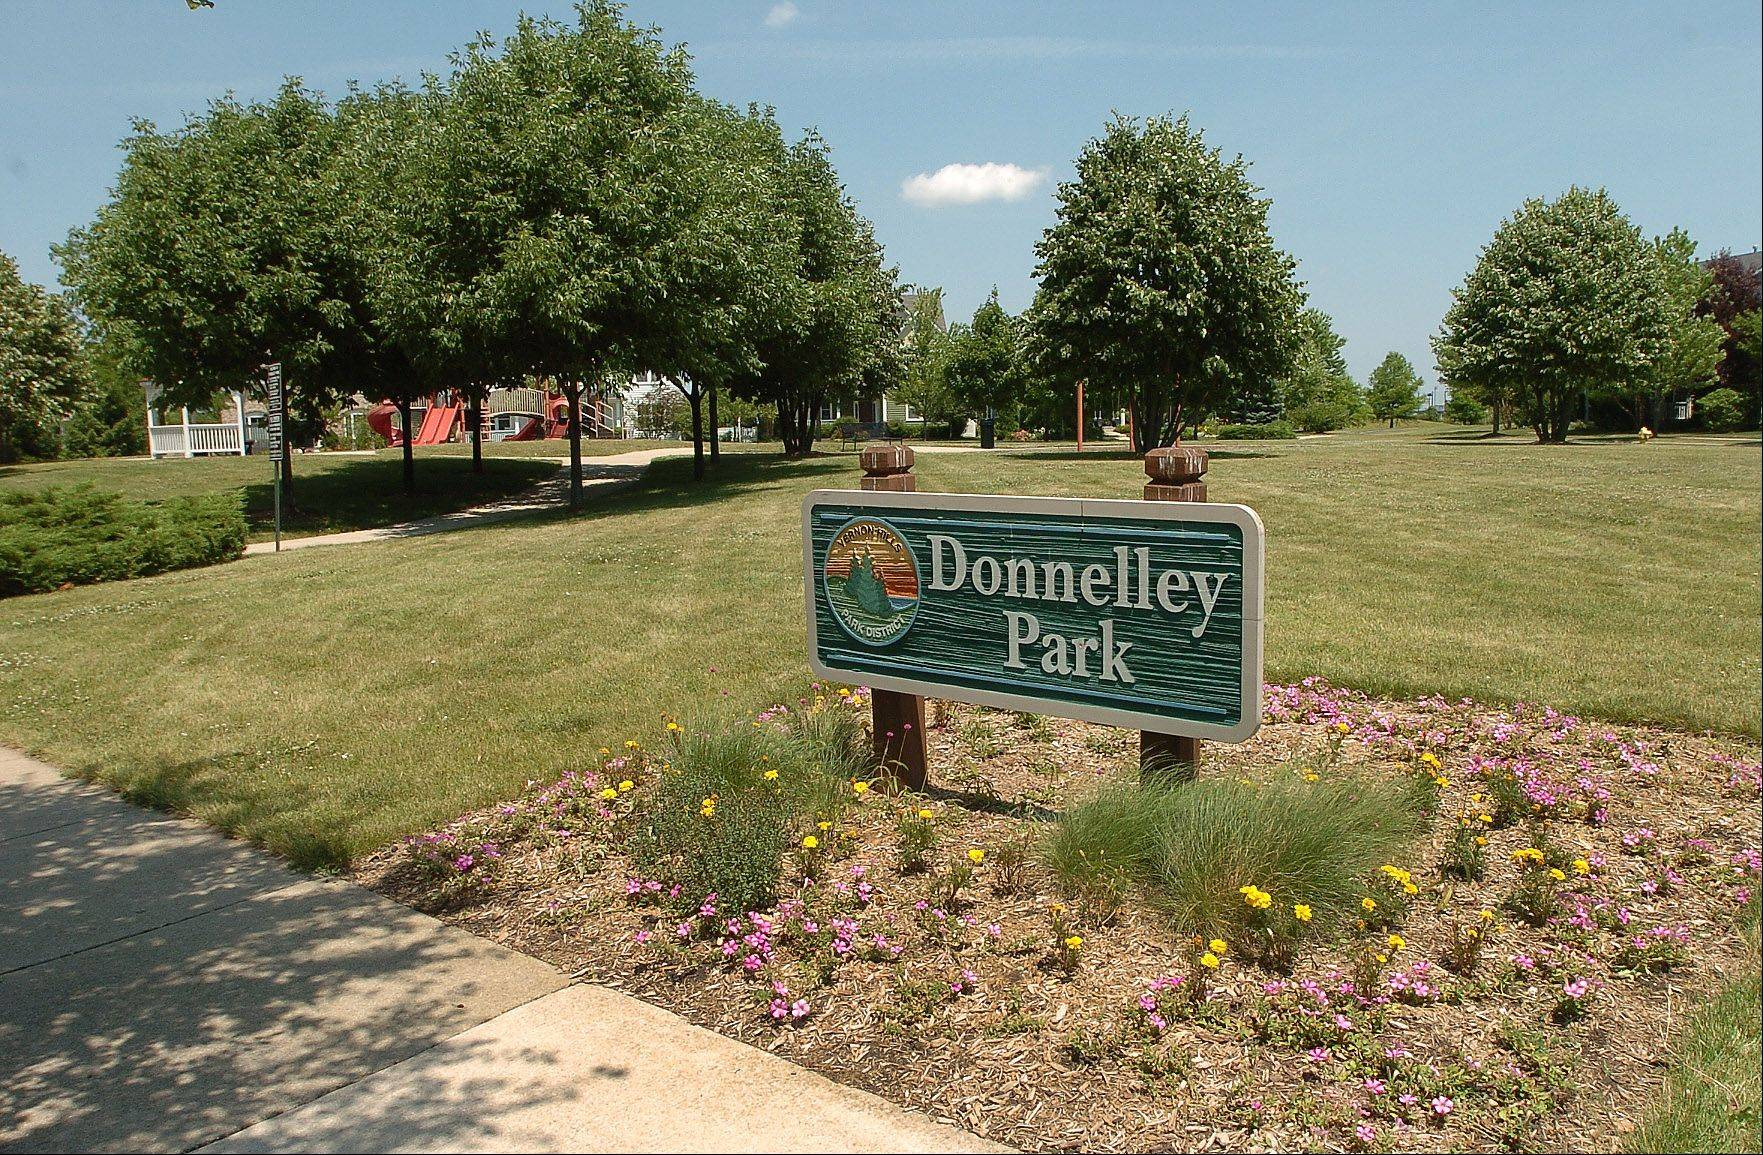 Donnelley Park is one of several parks and playgrounds in the Centennial Crossing neighborhood.